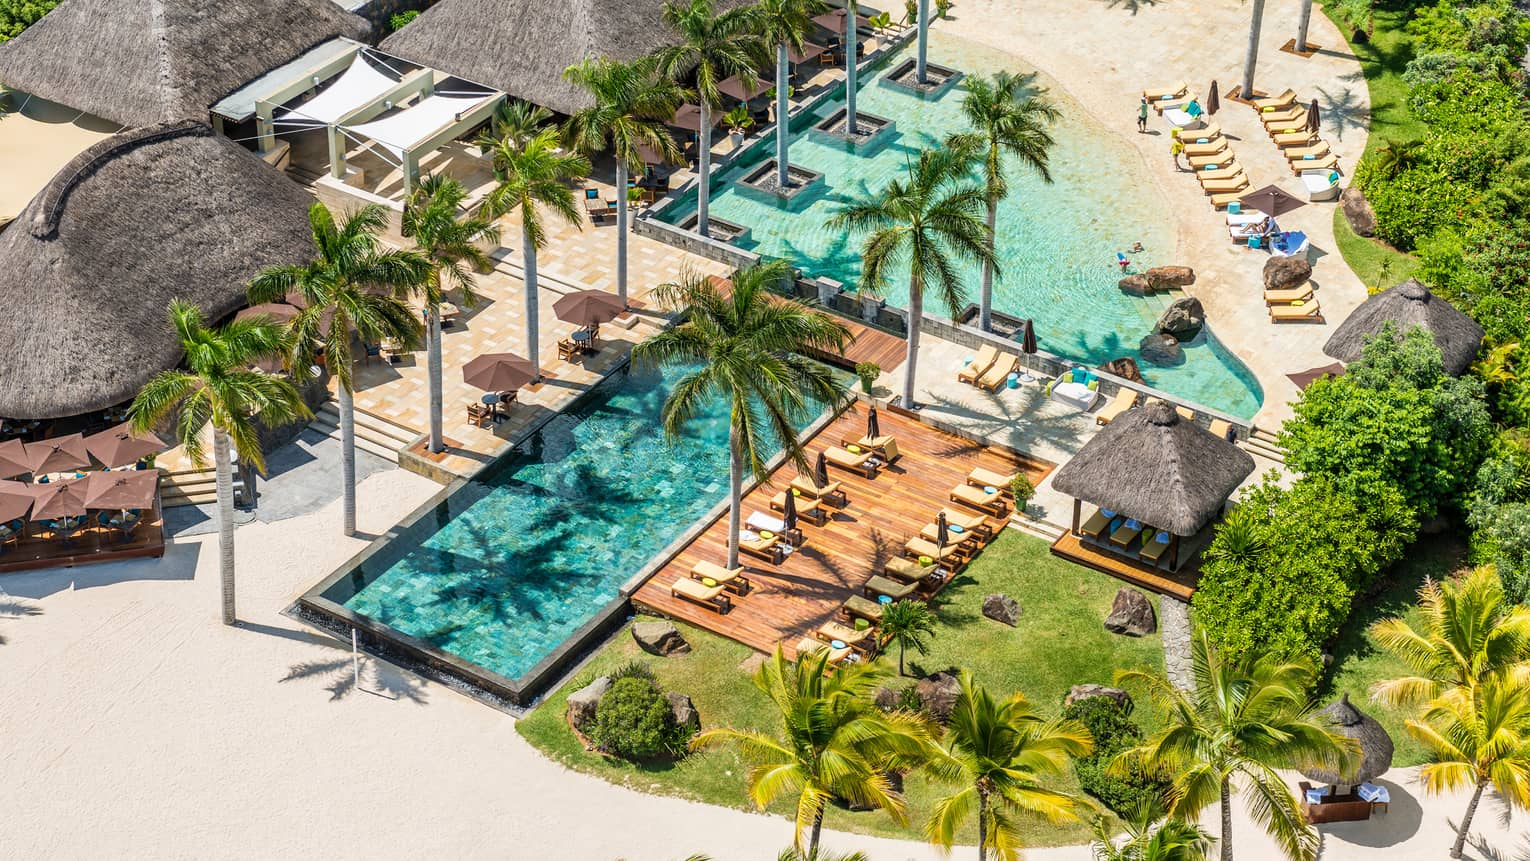 Aerial view of outdoor swimming pools, palm trees, patios on Four Seasons Mauritius resort